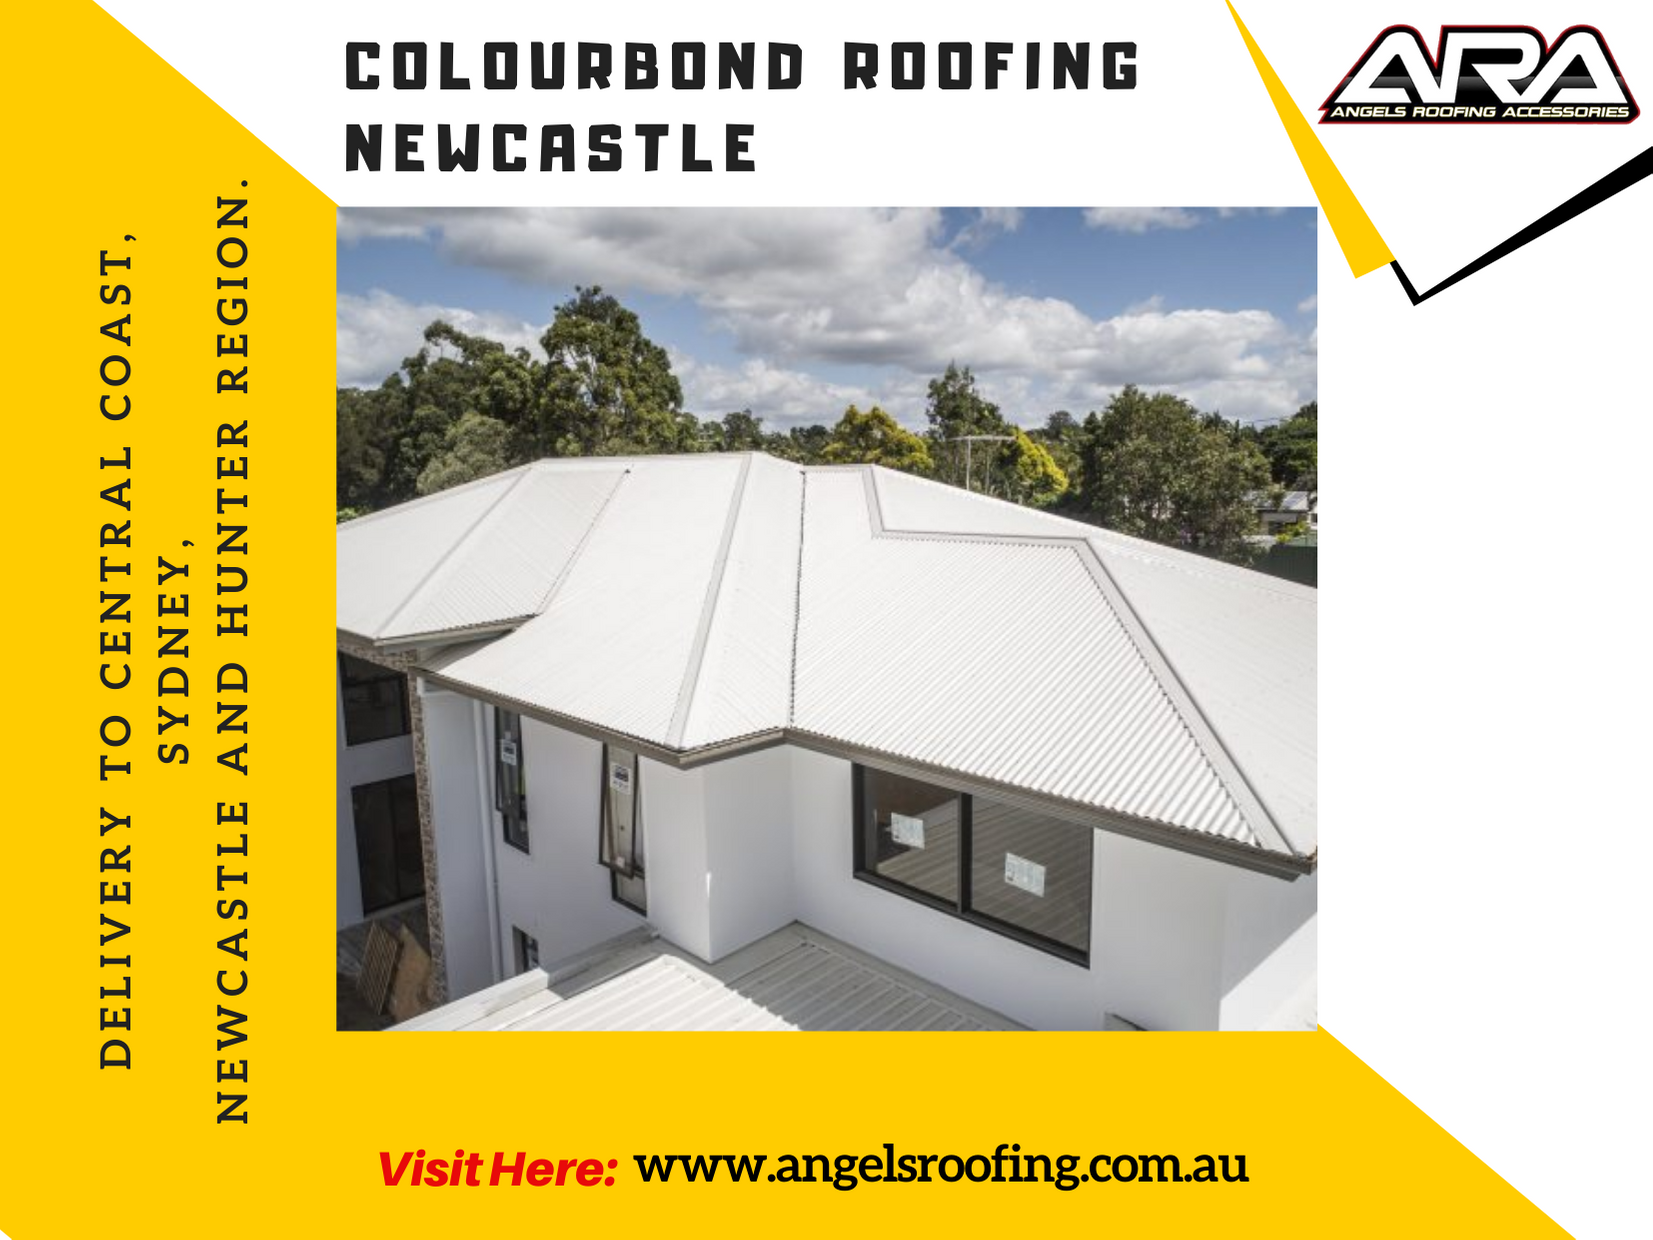 Colorbond Roofing Supplies In Newcastle Nsw In 2020 Roofing Roofing Supplies Roofing Services